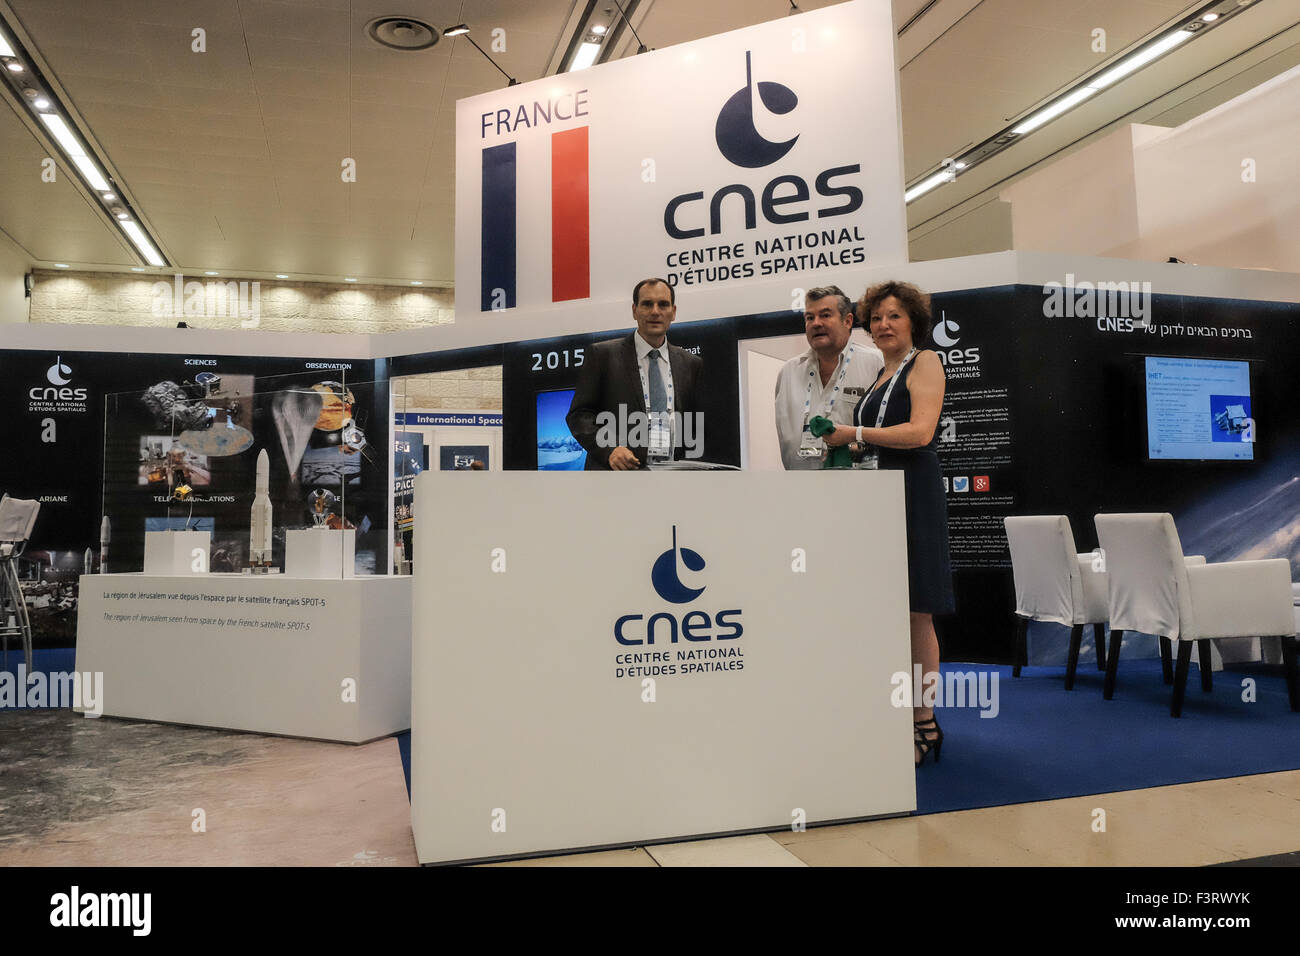 Israel. 12th October, 2015. CNES France, Centre National d'Etudes Spatiales, mans a booth at the International - Stock Image